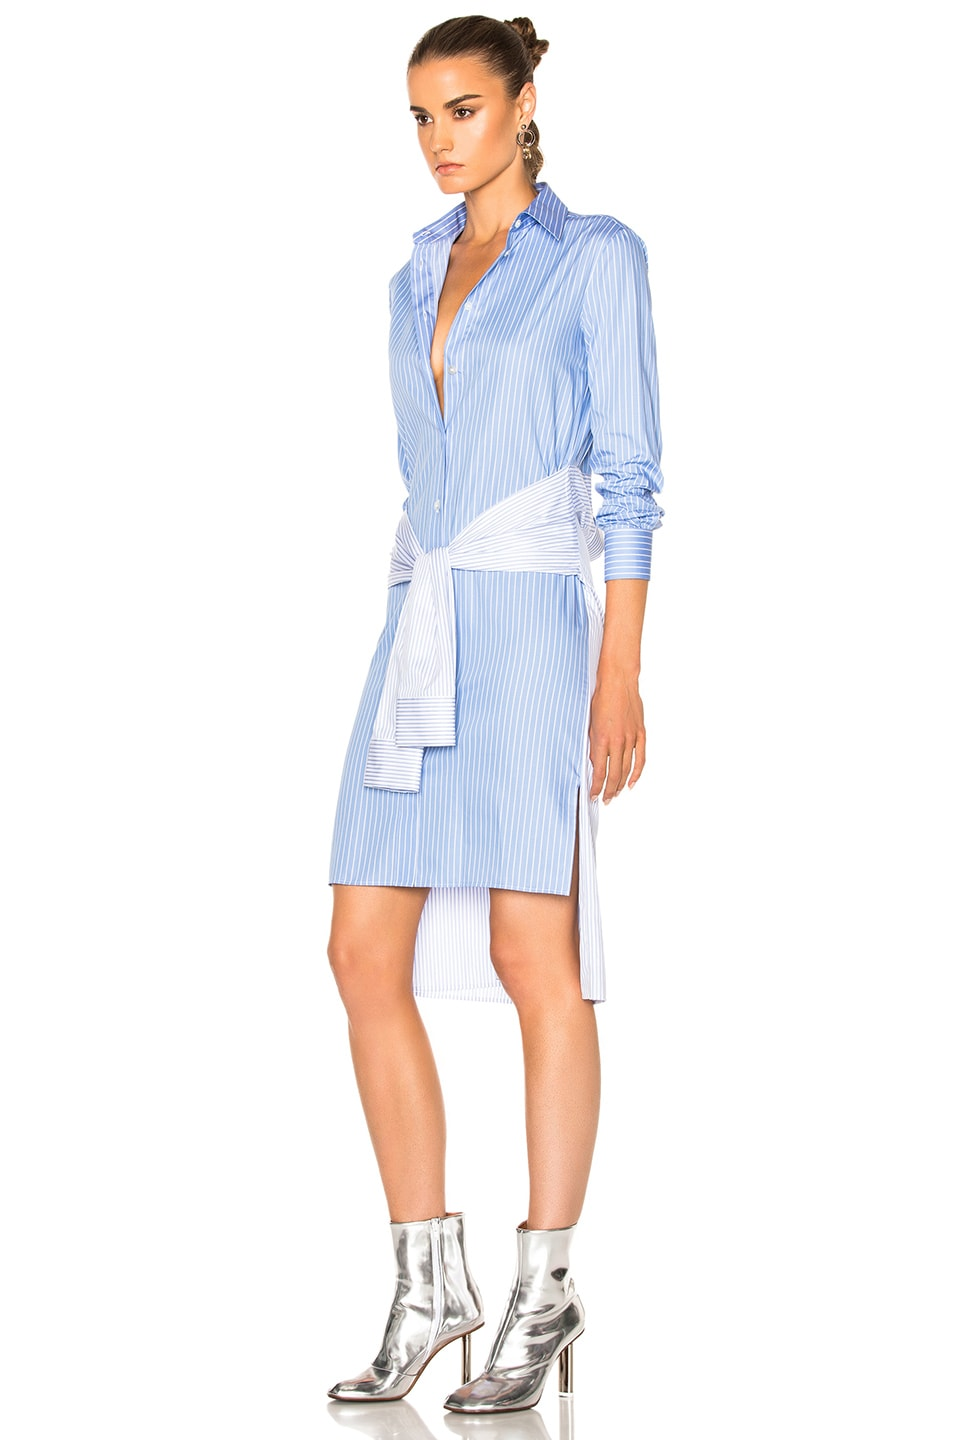 Maison Margiela Striped Cotton Poplin Shirt Dress In Blue Fwrd